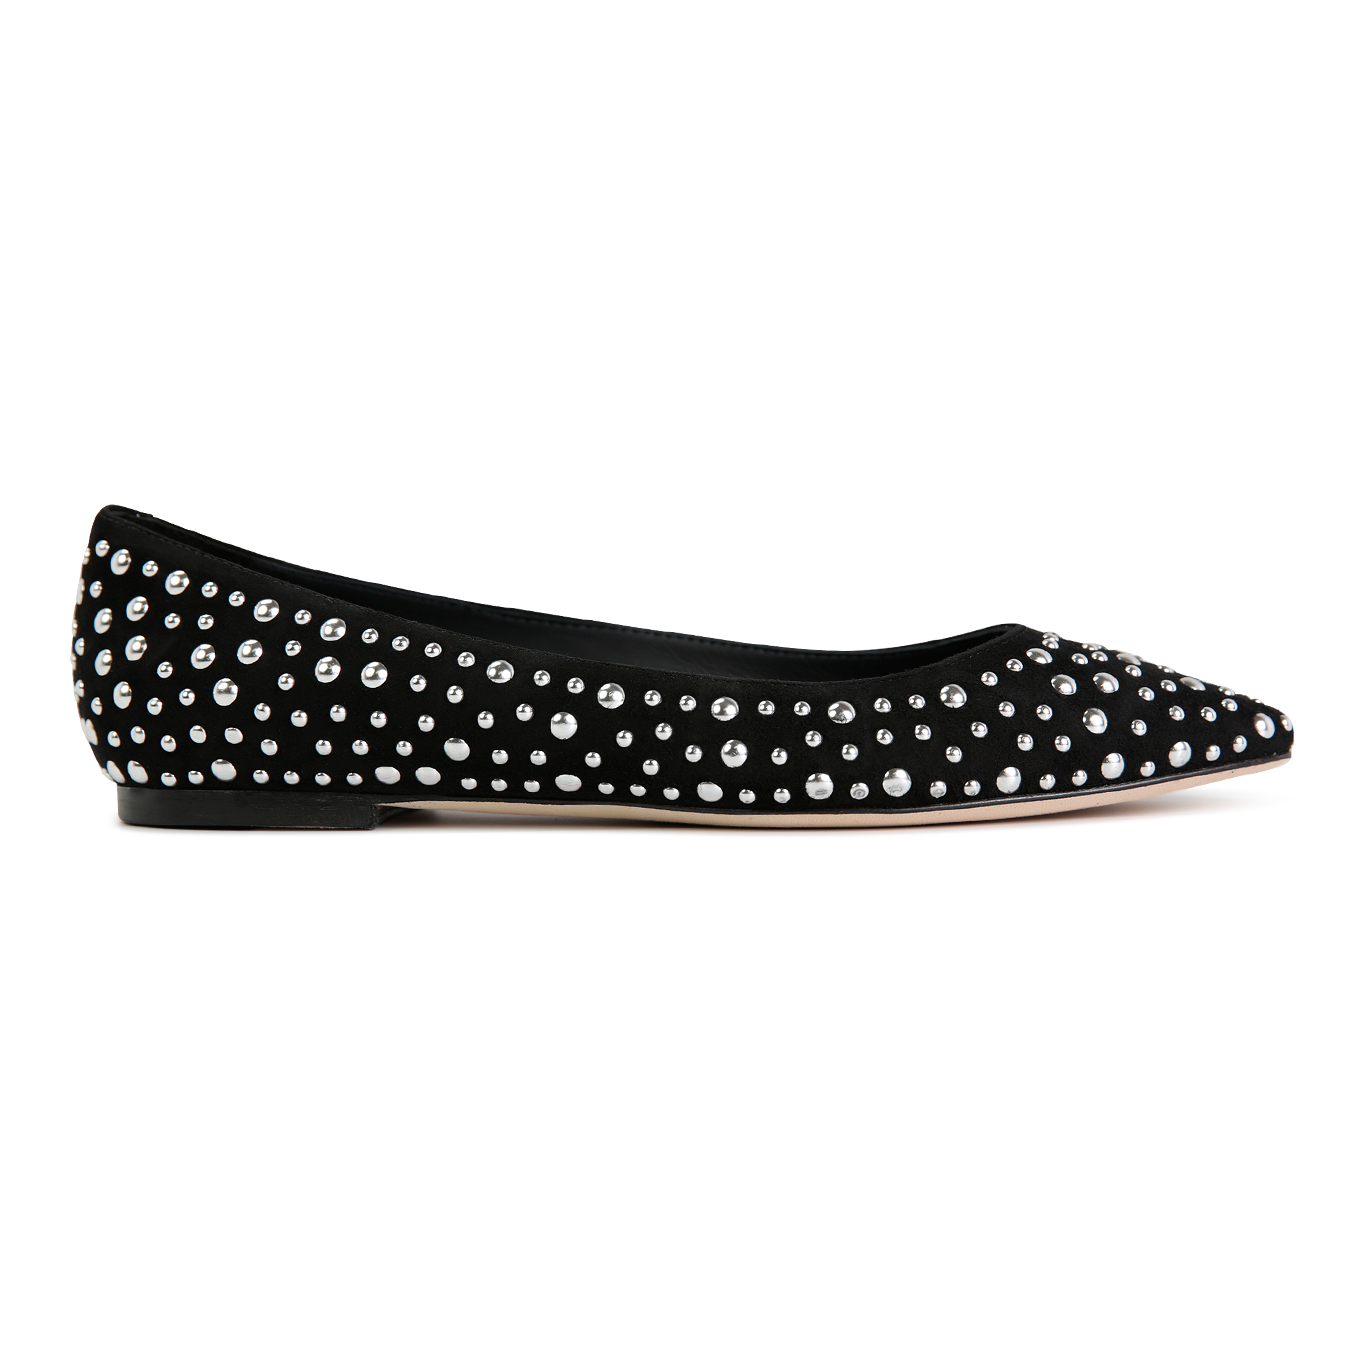 SIENA - Velukid Nero + Big Silver Studs, VIAJIYU - Women's Hand Made Sustainable Luxury Shoes. Made in Italy. Made to Order.